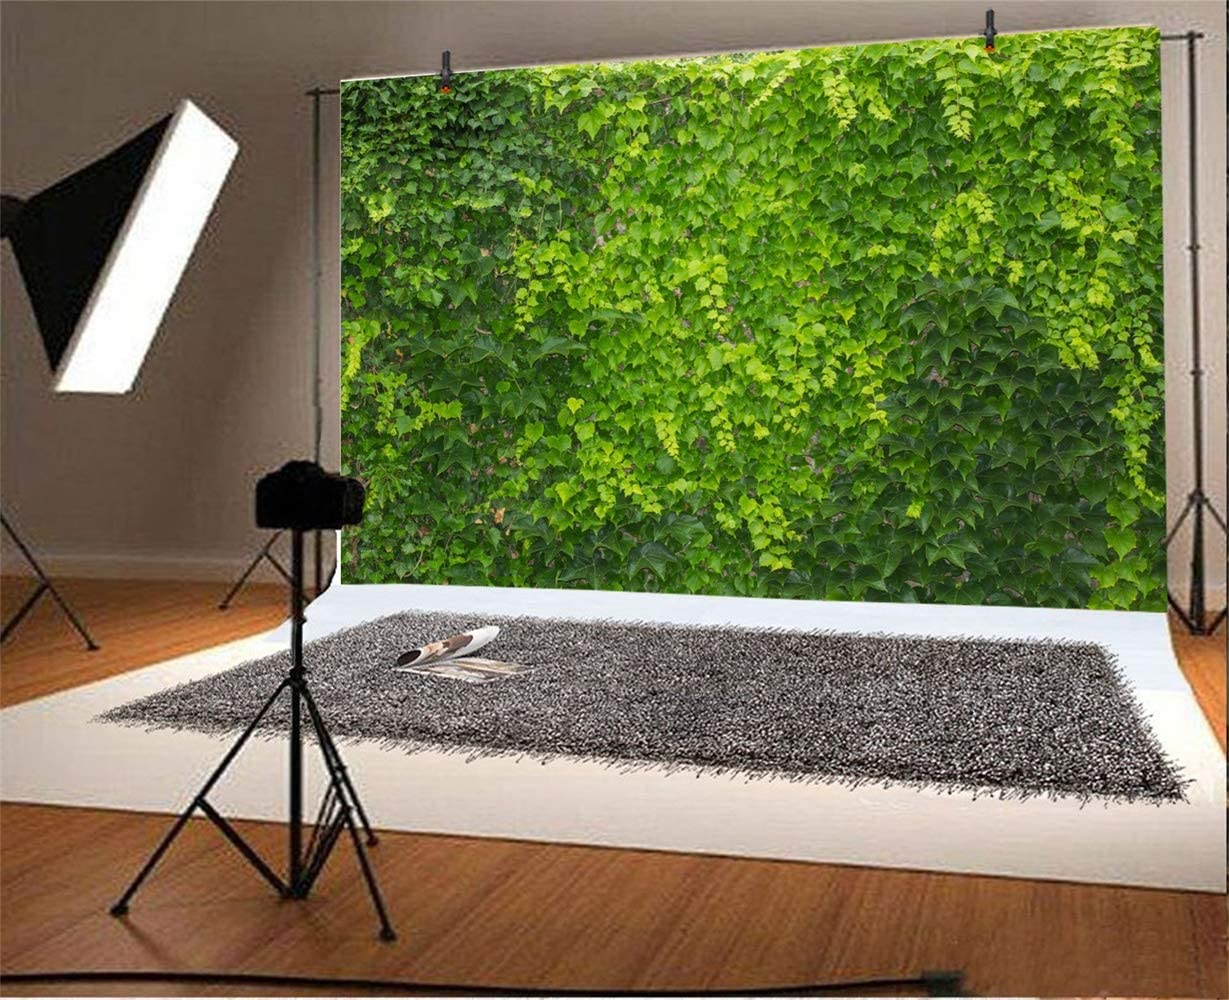 SZZWY 10x7ft Dusk Park Scenic Vinyl Photography Background Sunset Lush Forest Trees Green Grassland Backdrop Spring Scenic Indoor Decoration Landscape Wallpaper Studio Props